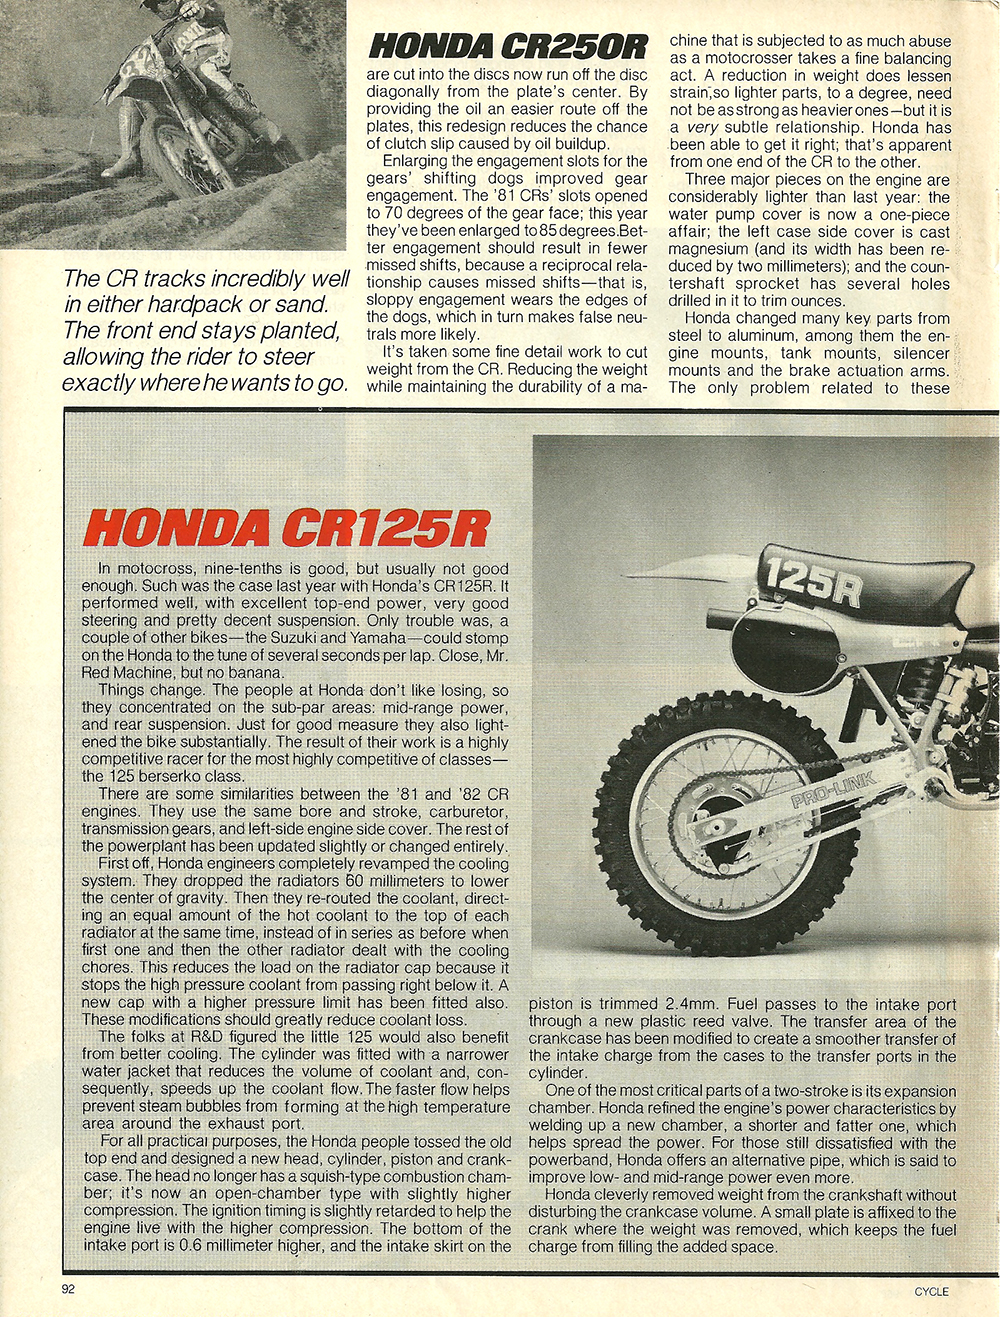 1982 Honda CR250R off road test 6.jpg